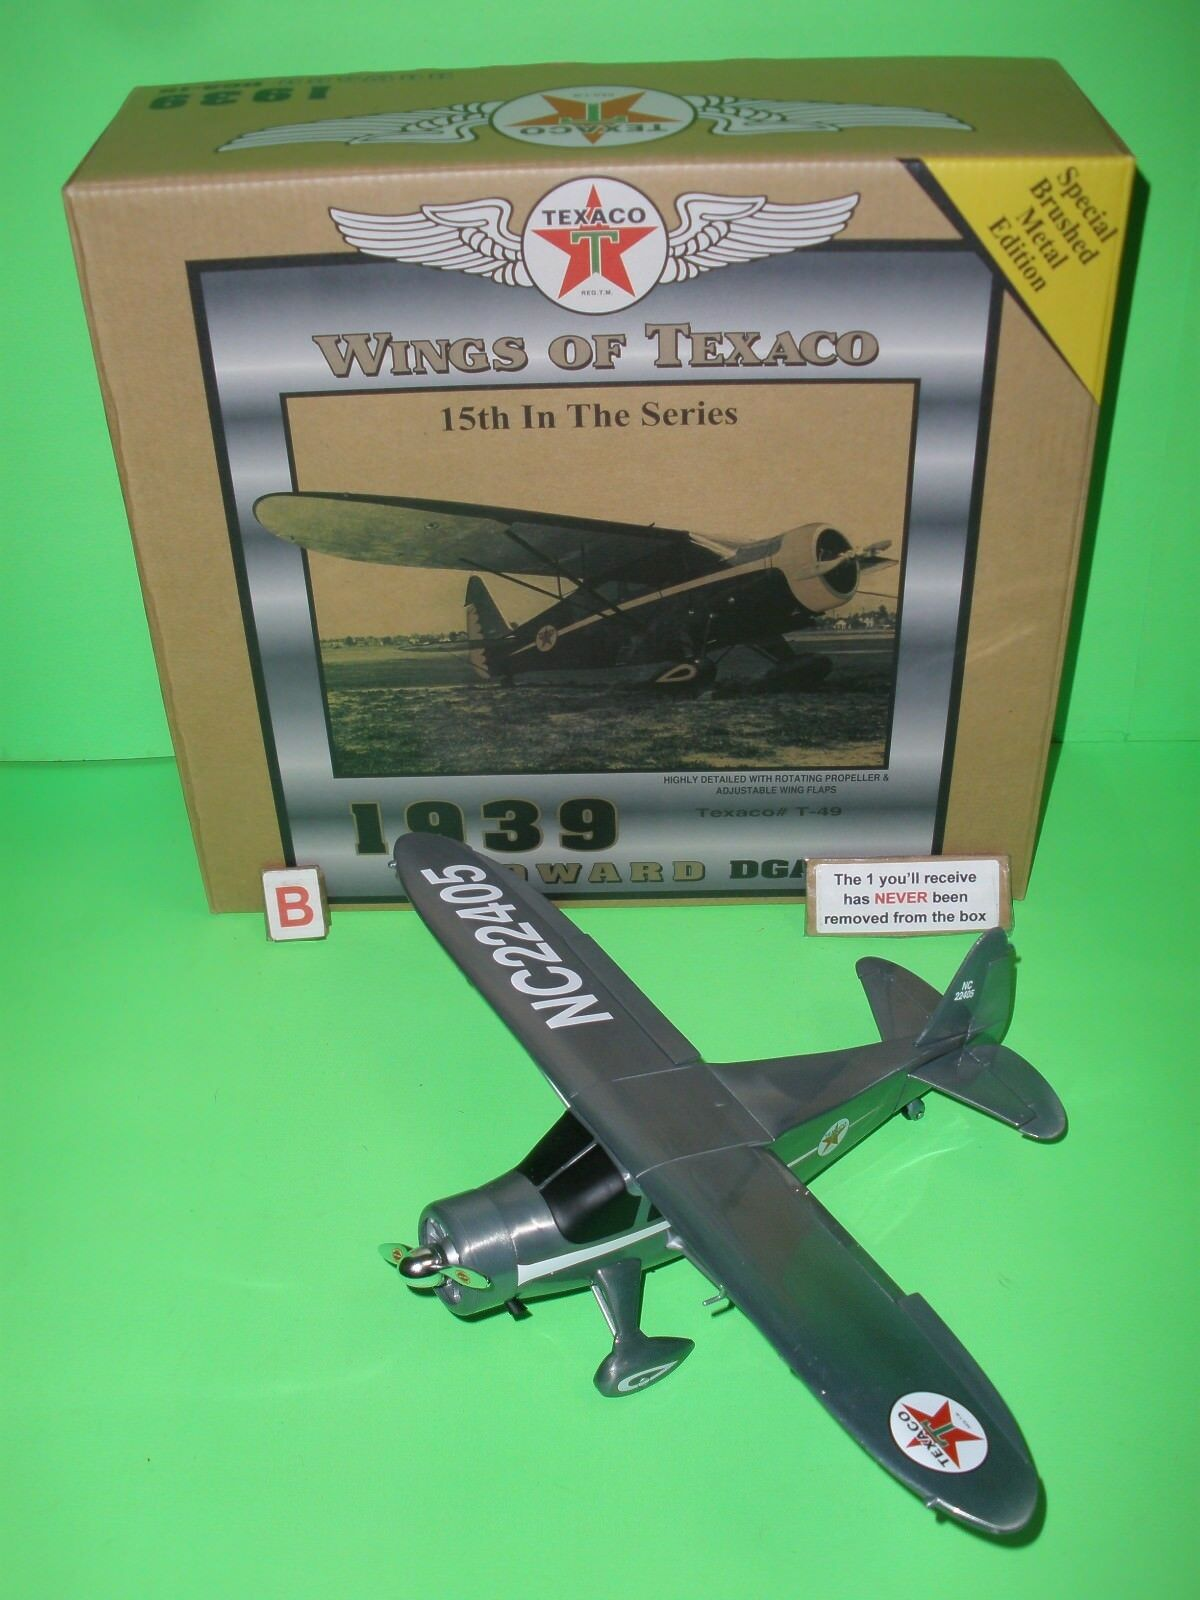 2007 WINGS OF TEXACO HOWARD DGA-15 AIRPLANE SPECIAL EDITION